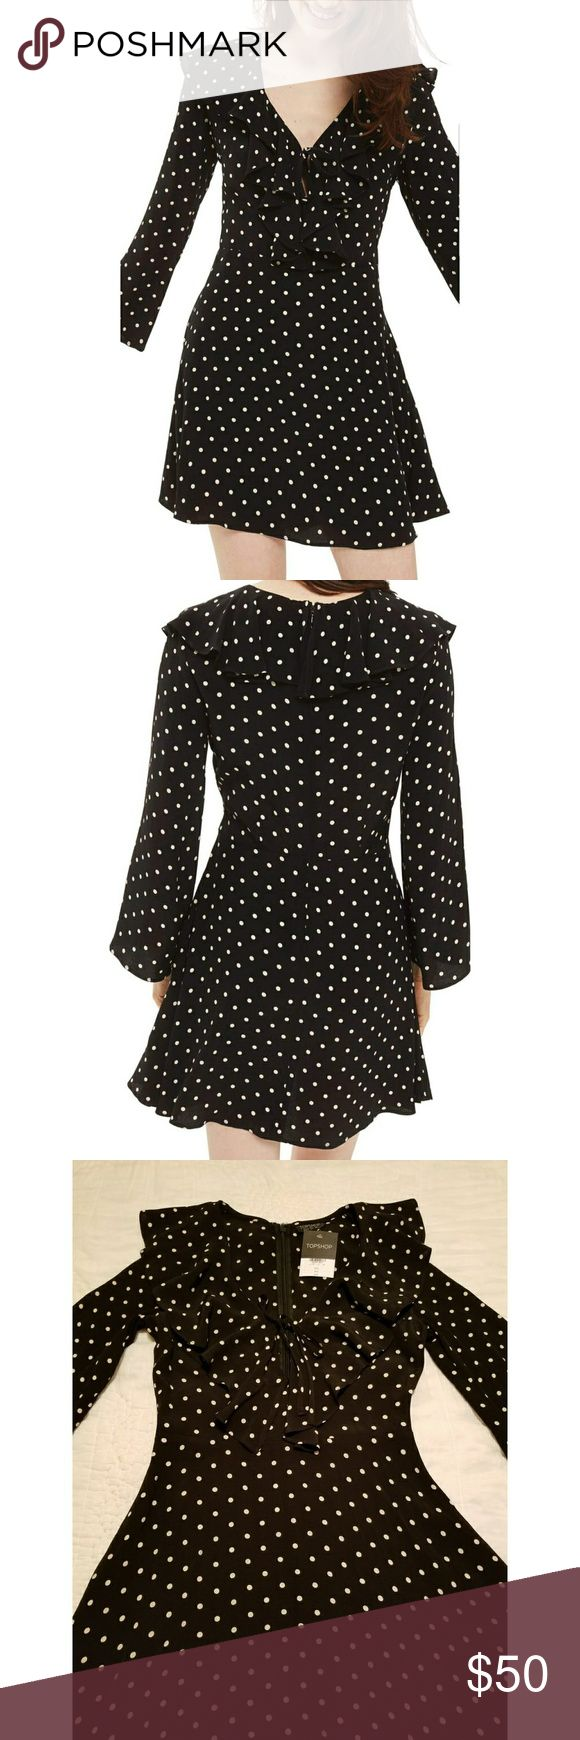 """SALE Topshop Dress NWT US2 Polka dots and ruffles add girlish charm to an A-line minidress detailed with a tied keyhole at the V-neck and long, flared sleeves.  35"""" length Back zip closure V-neck with tie keyhole closure Flared long sleeves 100% viscose Machine wash, dry flat  Original price is $90 Reasonable offers welcome. Topshop Dresses Mini"""